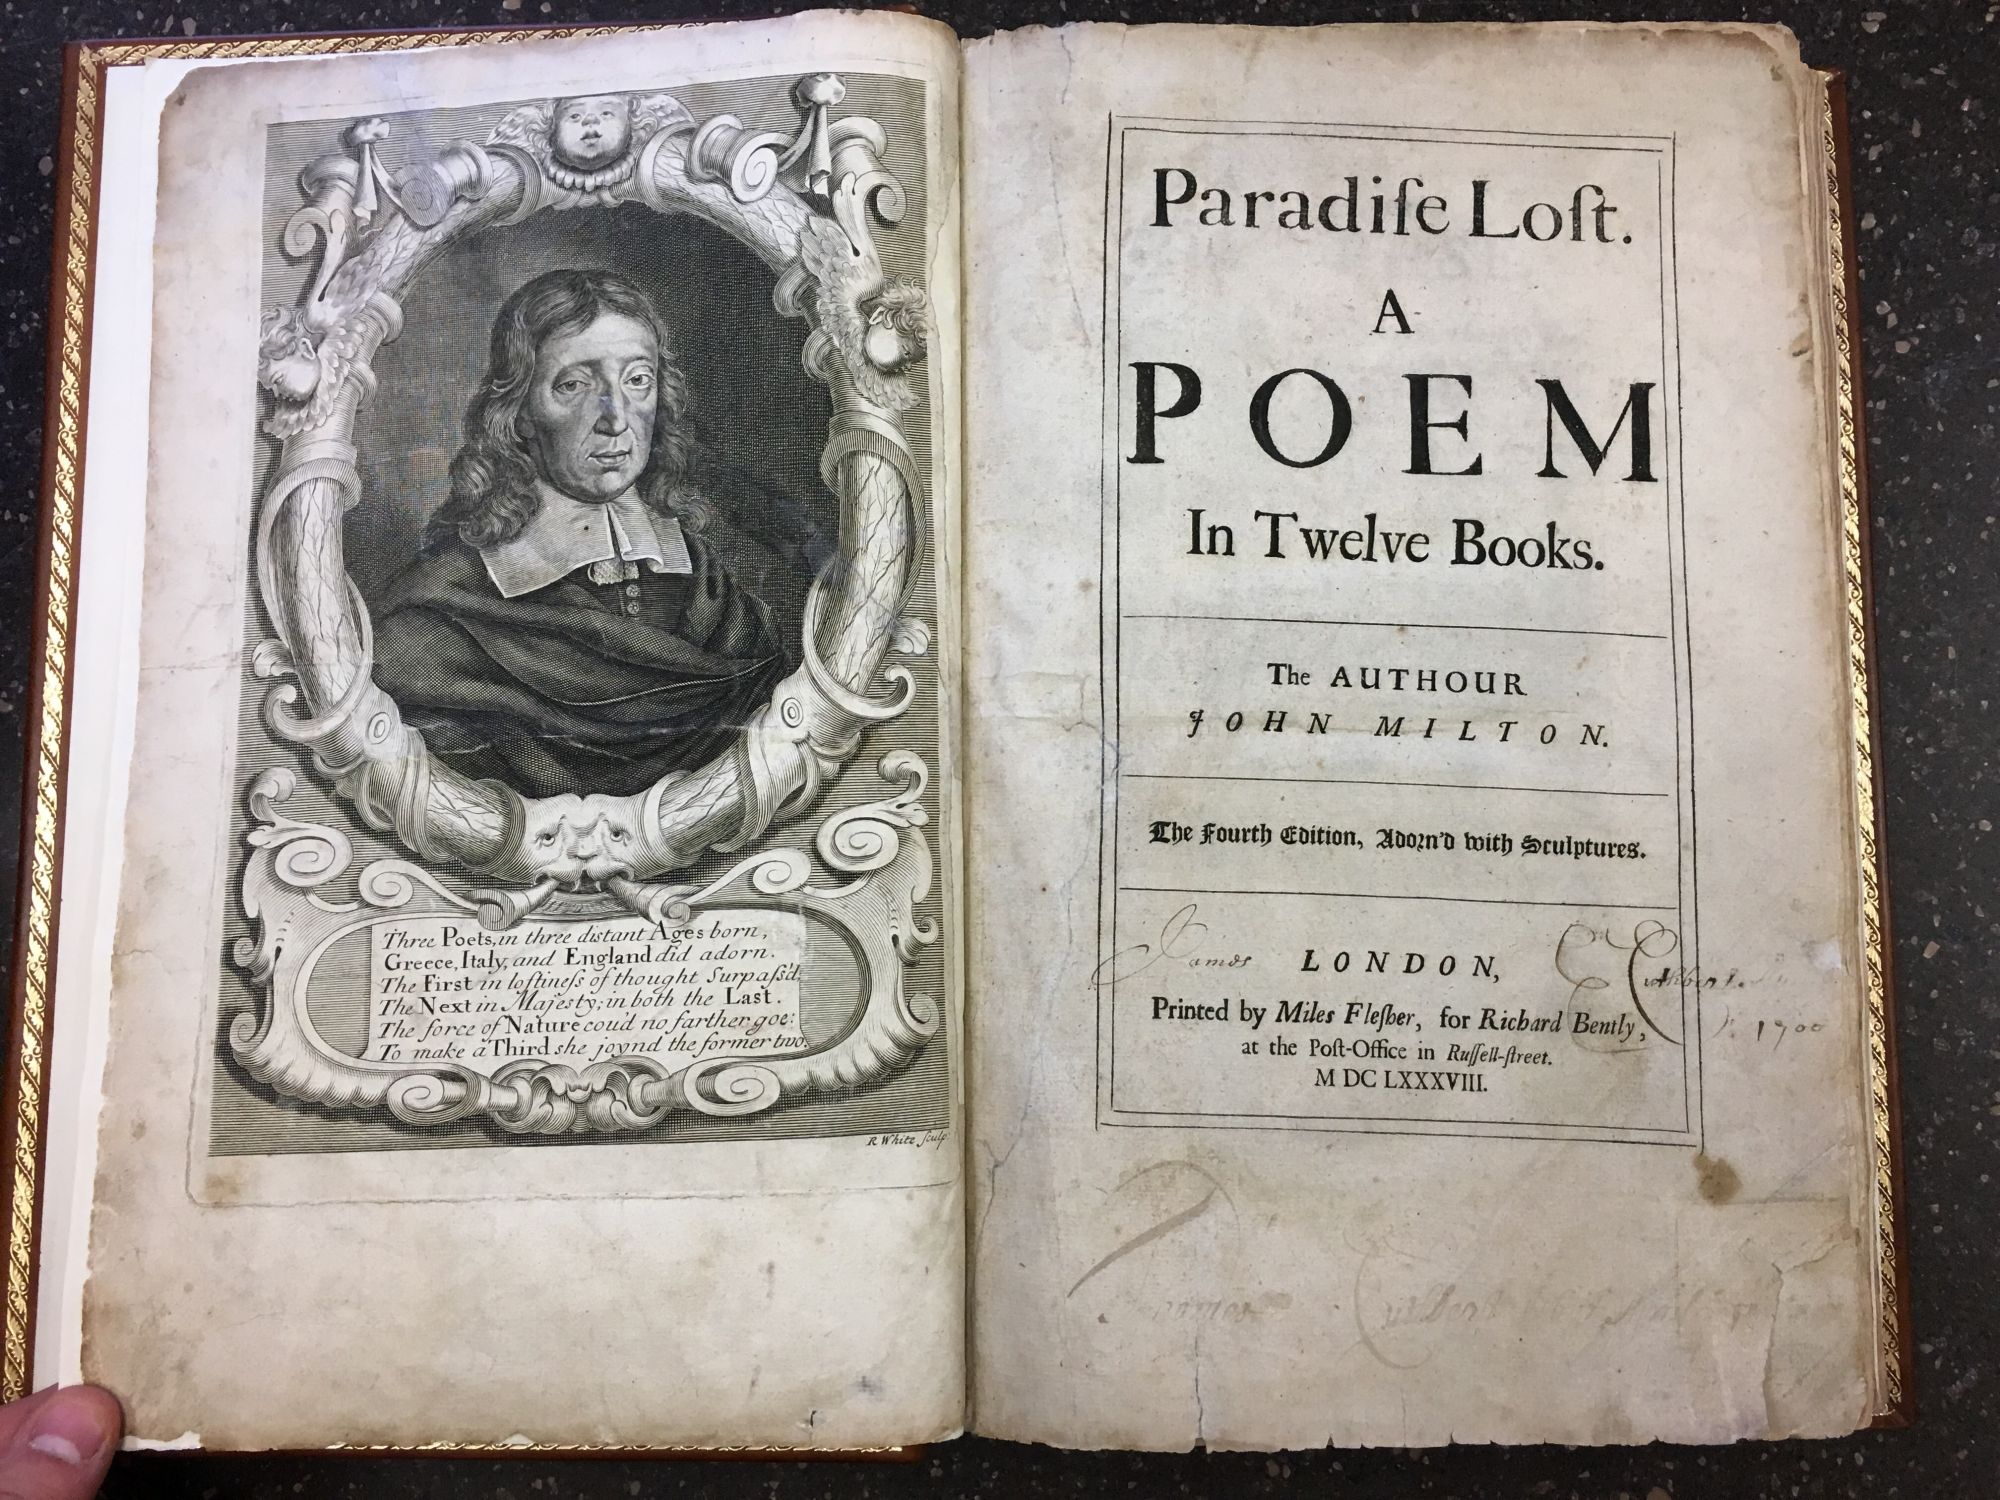 PARADISE LOST. A POEM IN TWELVE BOOKS. John Milton.